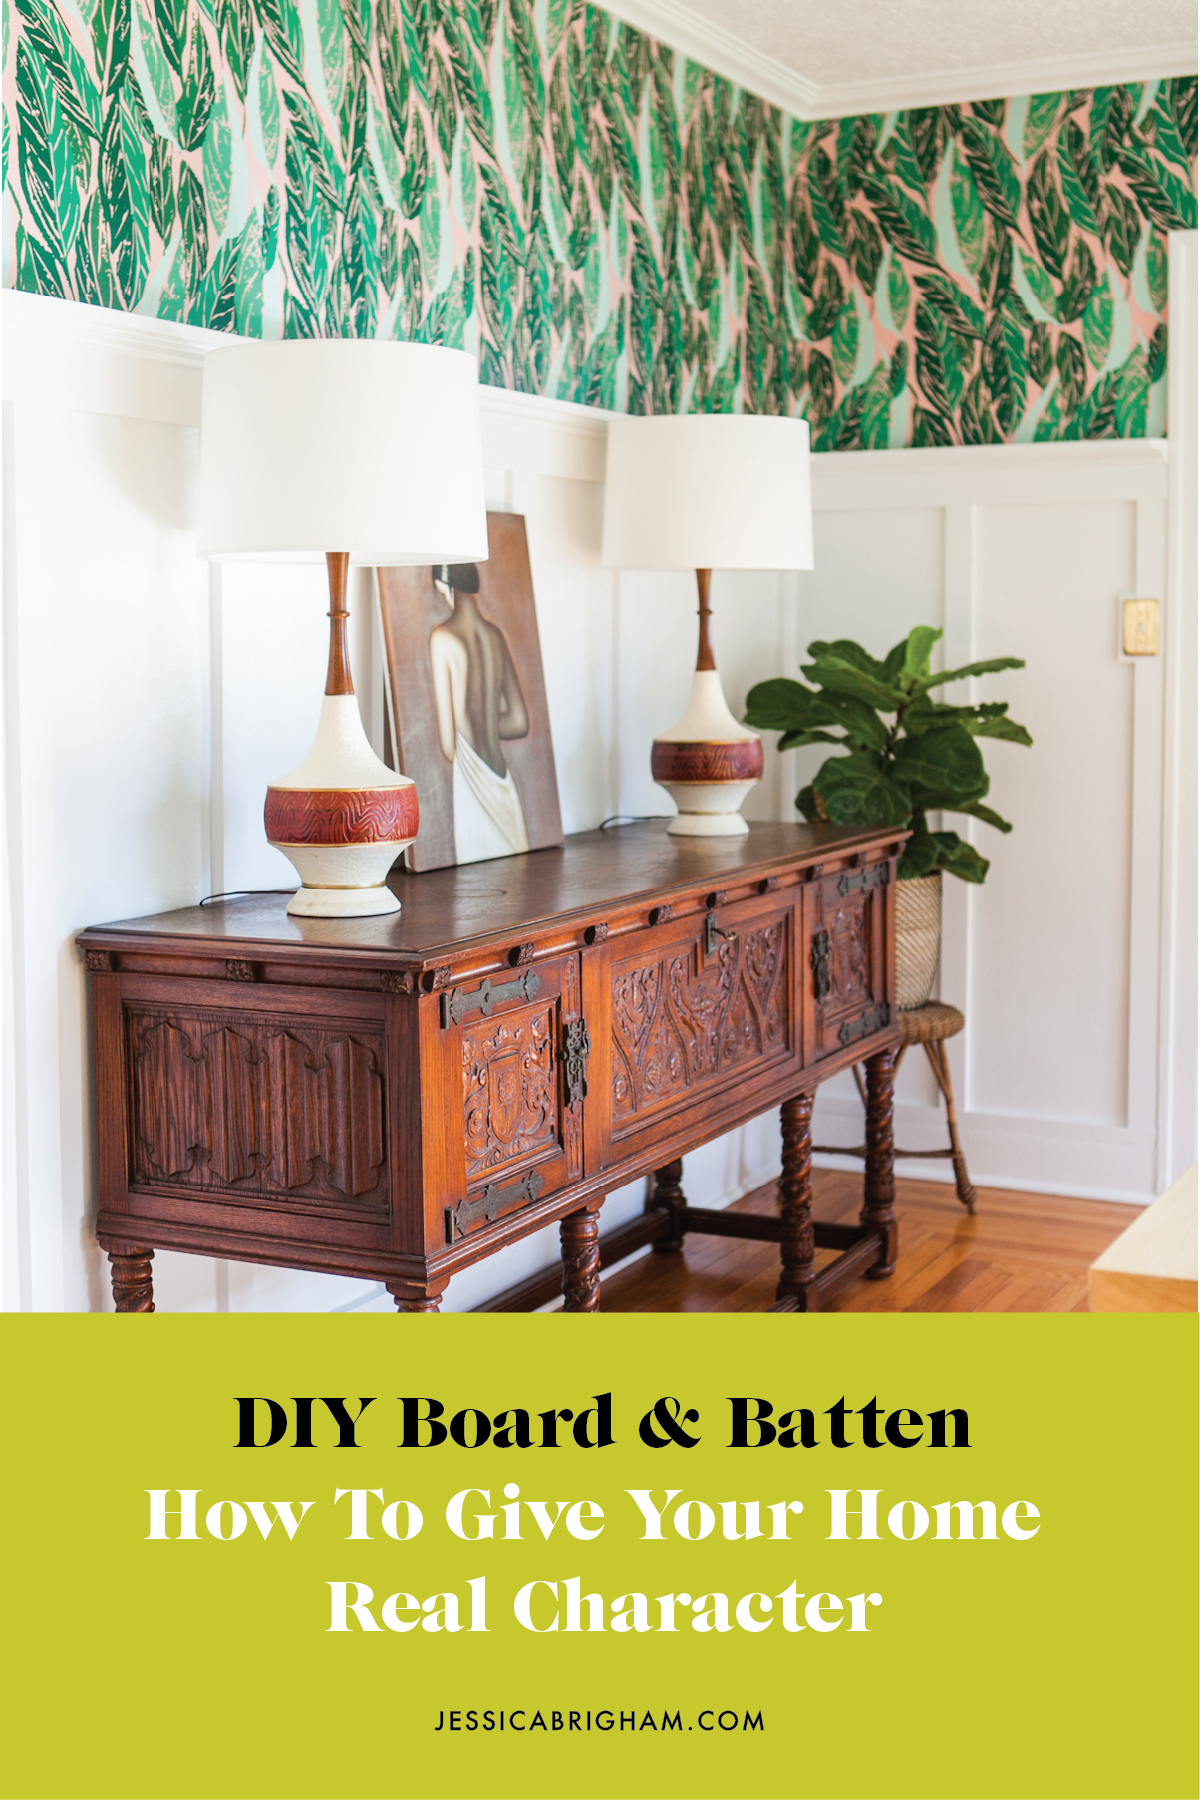 DIY Board And Batten | How To Give Your Home Real Character | Dining Room Design Inspiration | JessicaBrigham.com